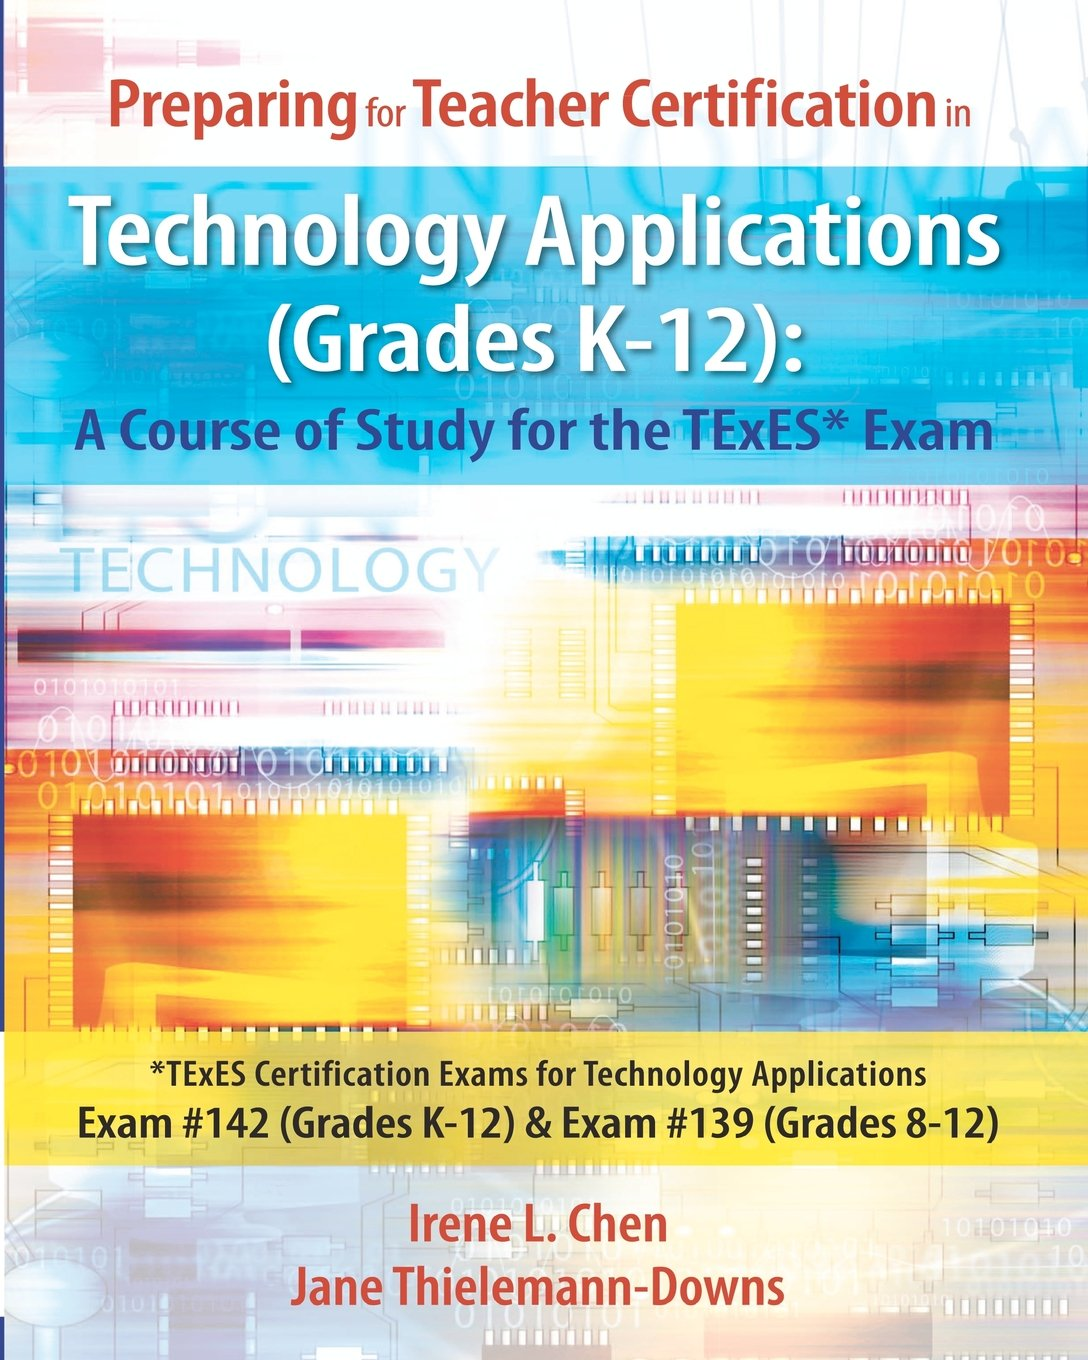 Passing the texes certification exam - Preparing For Teacher Certification In Technology Applications Grades K 12 A Course Of Study For The Texes Exam Texes Certification Exams For